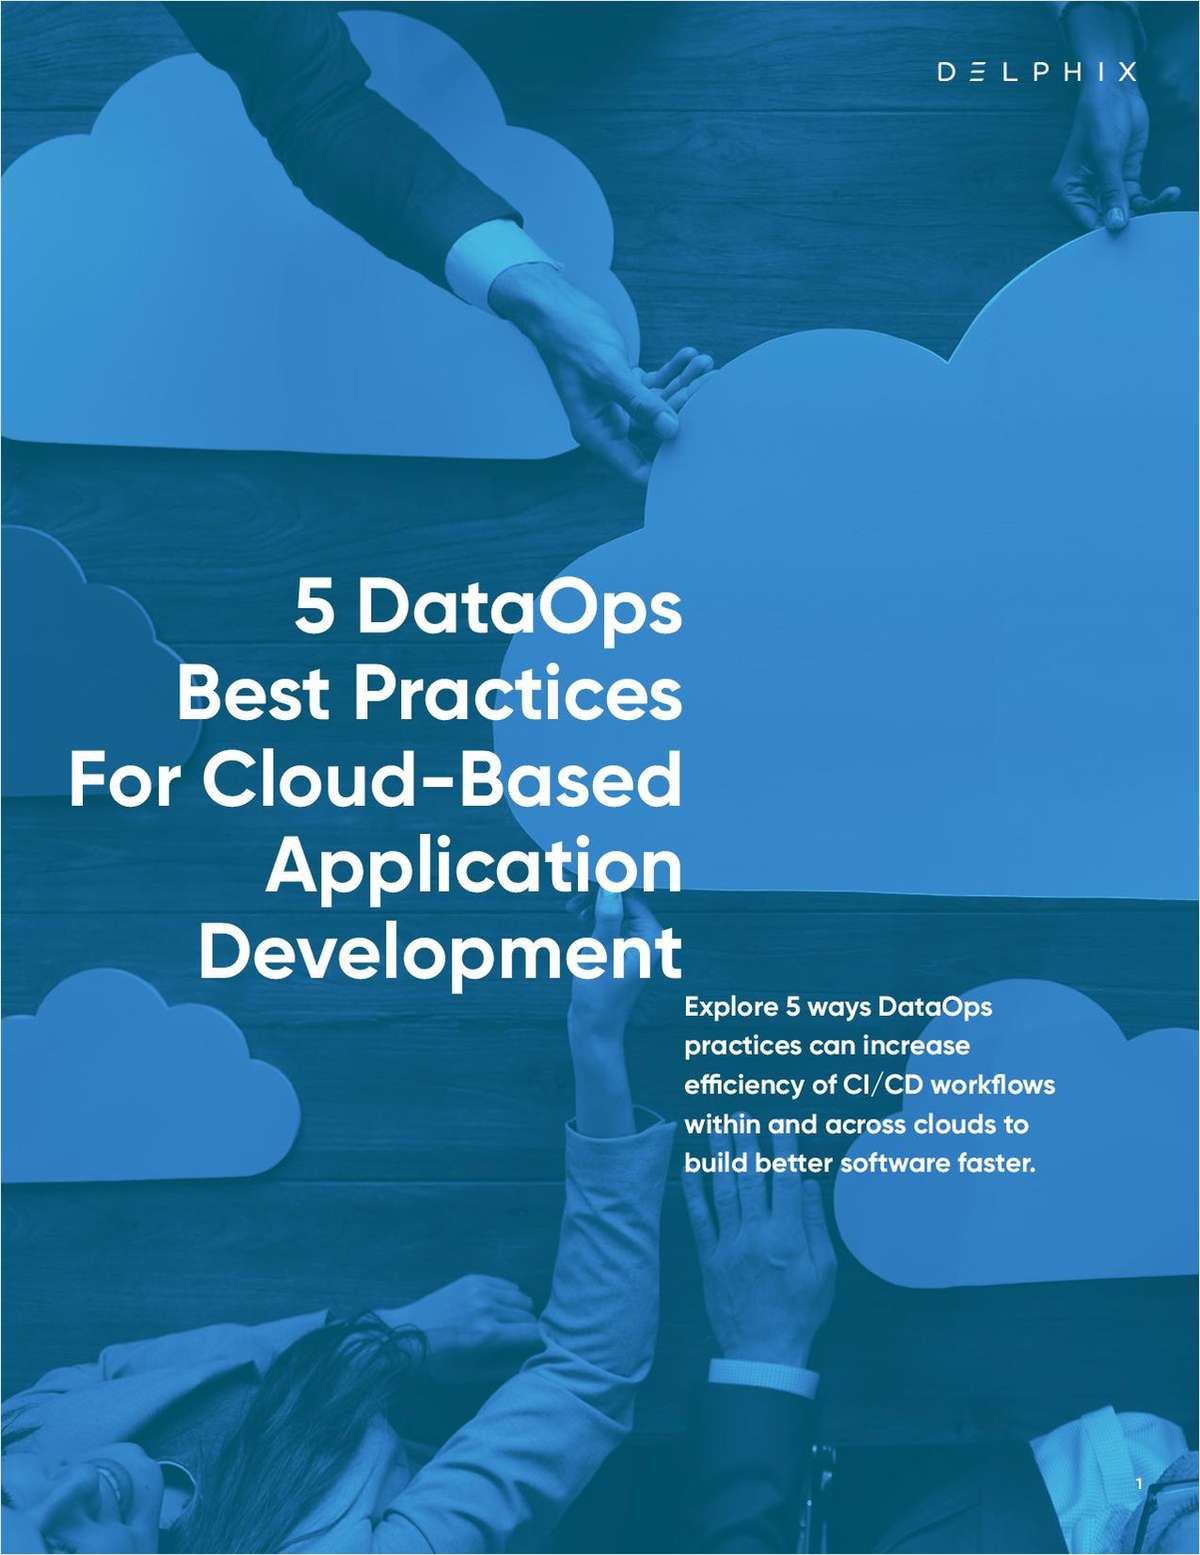 5 DataOps Best Practices For Cloud-Based Application Development